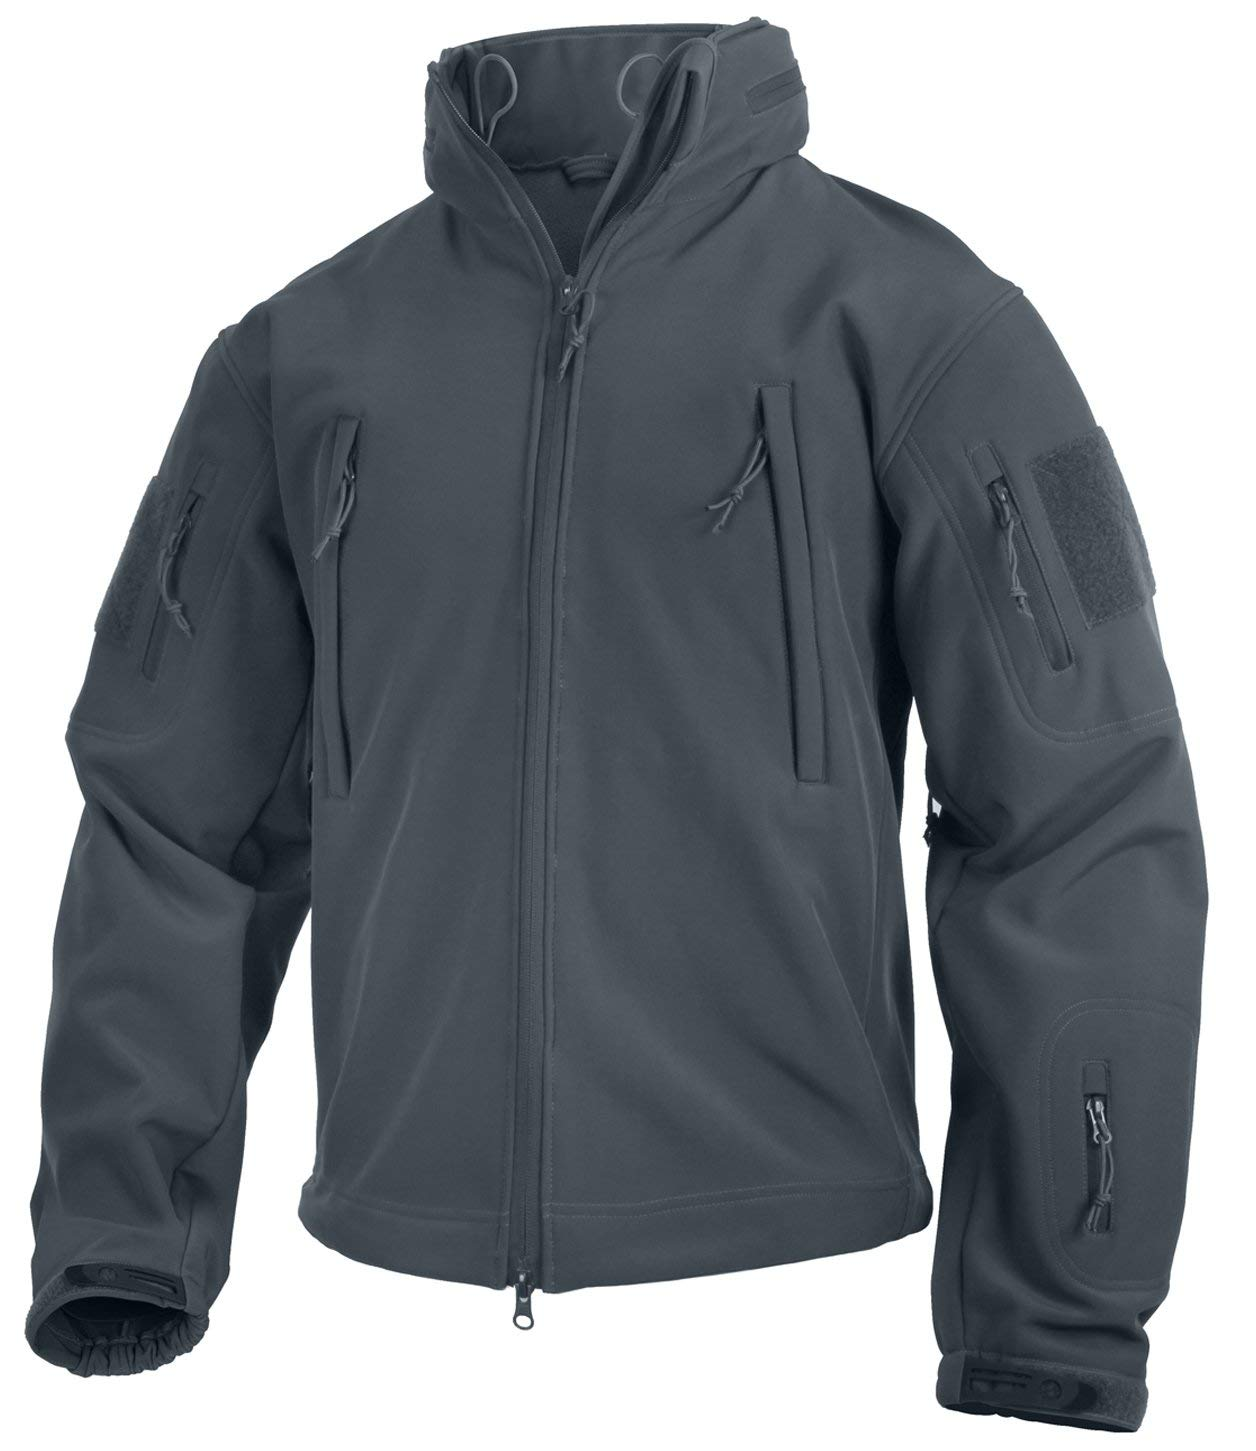 Rothco Special Ops Tactical Soft Shell Jacket - Gun Metal Gray - Small - 9824-GUN-METAL-GREY-S